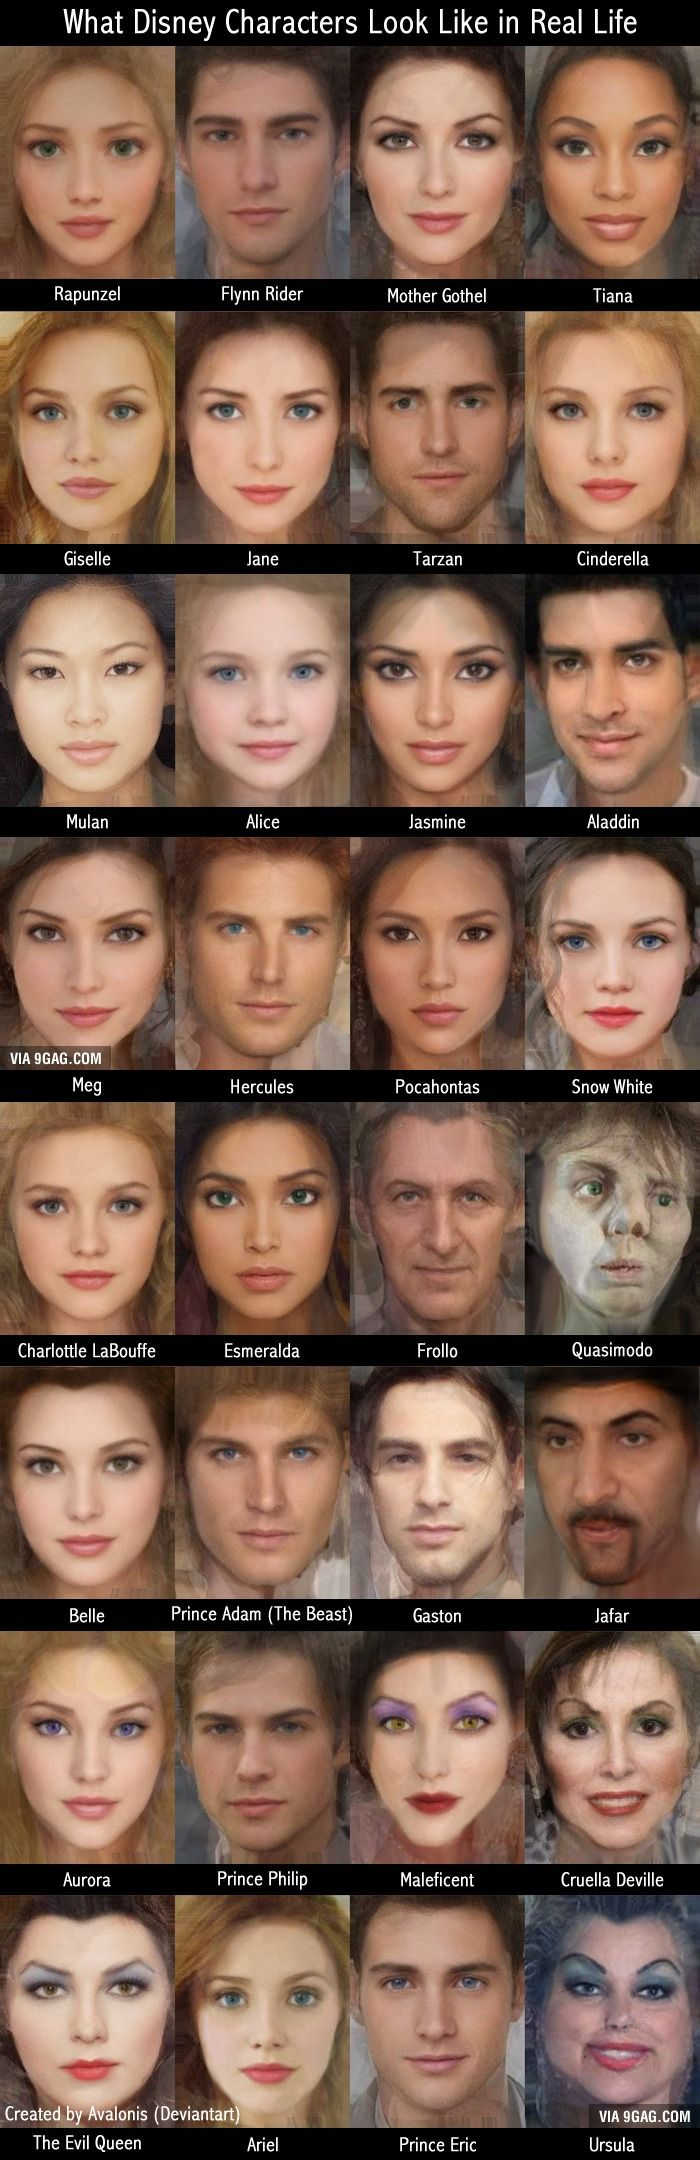 What Disney characters might look like in real life.